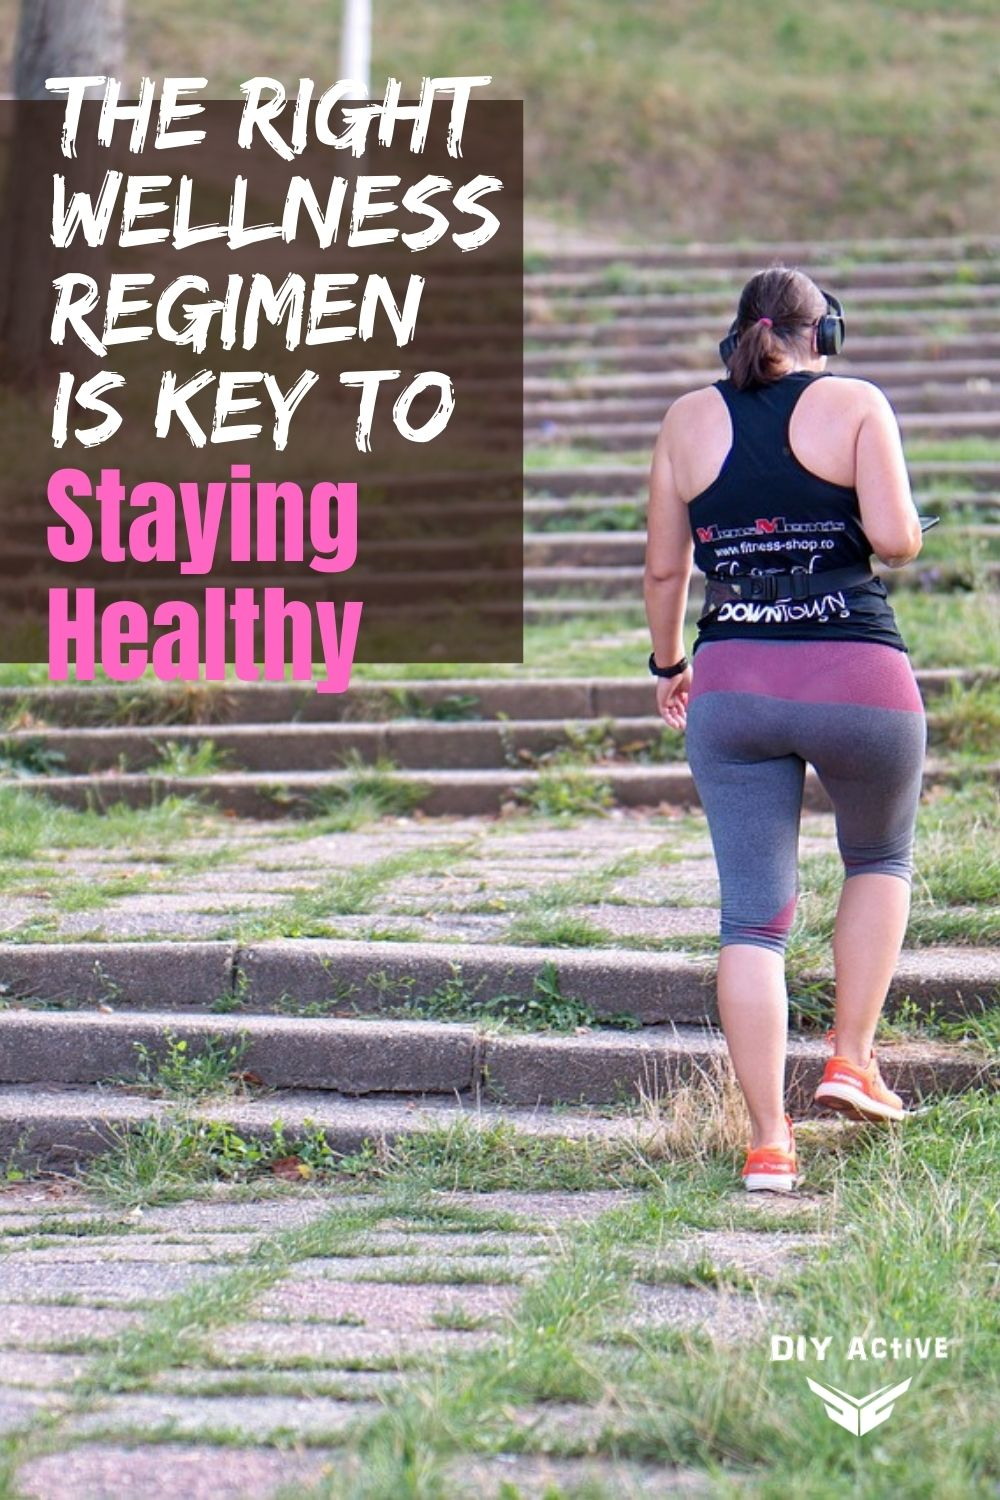 Maintaining the Right Wellness Regimen is Key to Staying Healthy